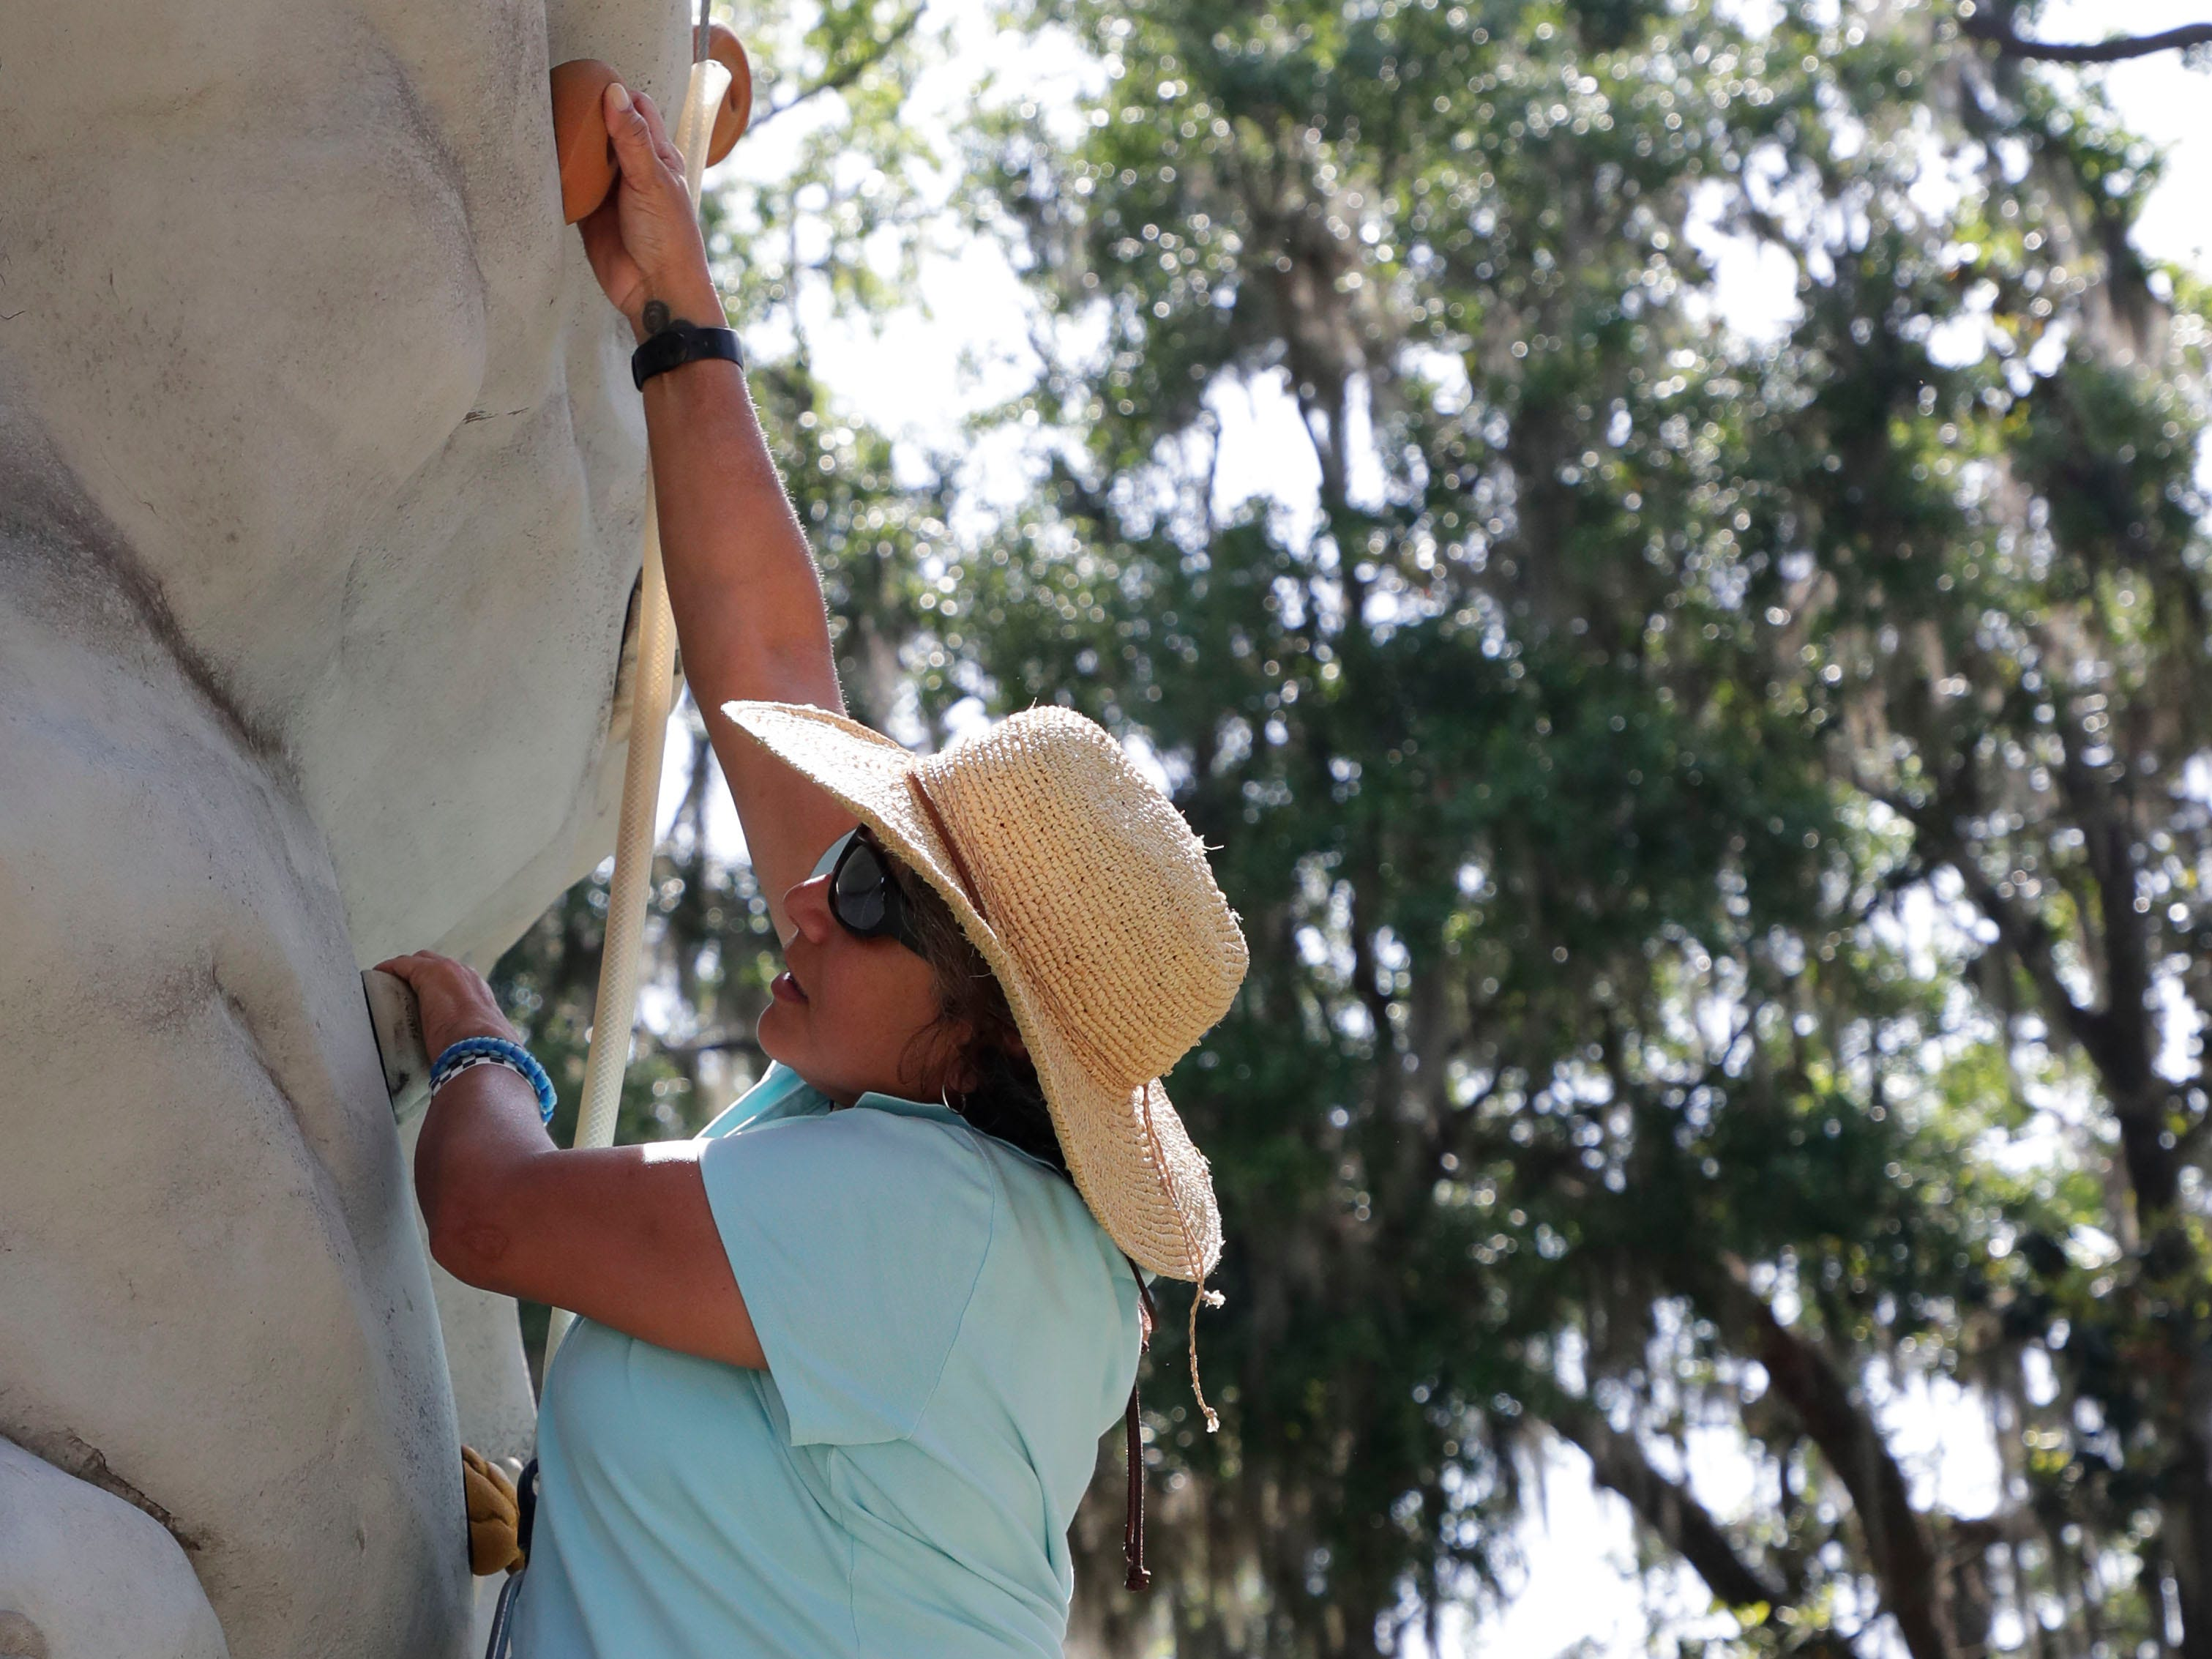 Mariela Mason climbs the rock wall during SportsAbility, a program with the Florida Disabled Outdoors Association, at Maclay Garden State Park Saturday,  April 13, 2019.